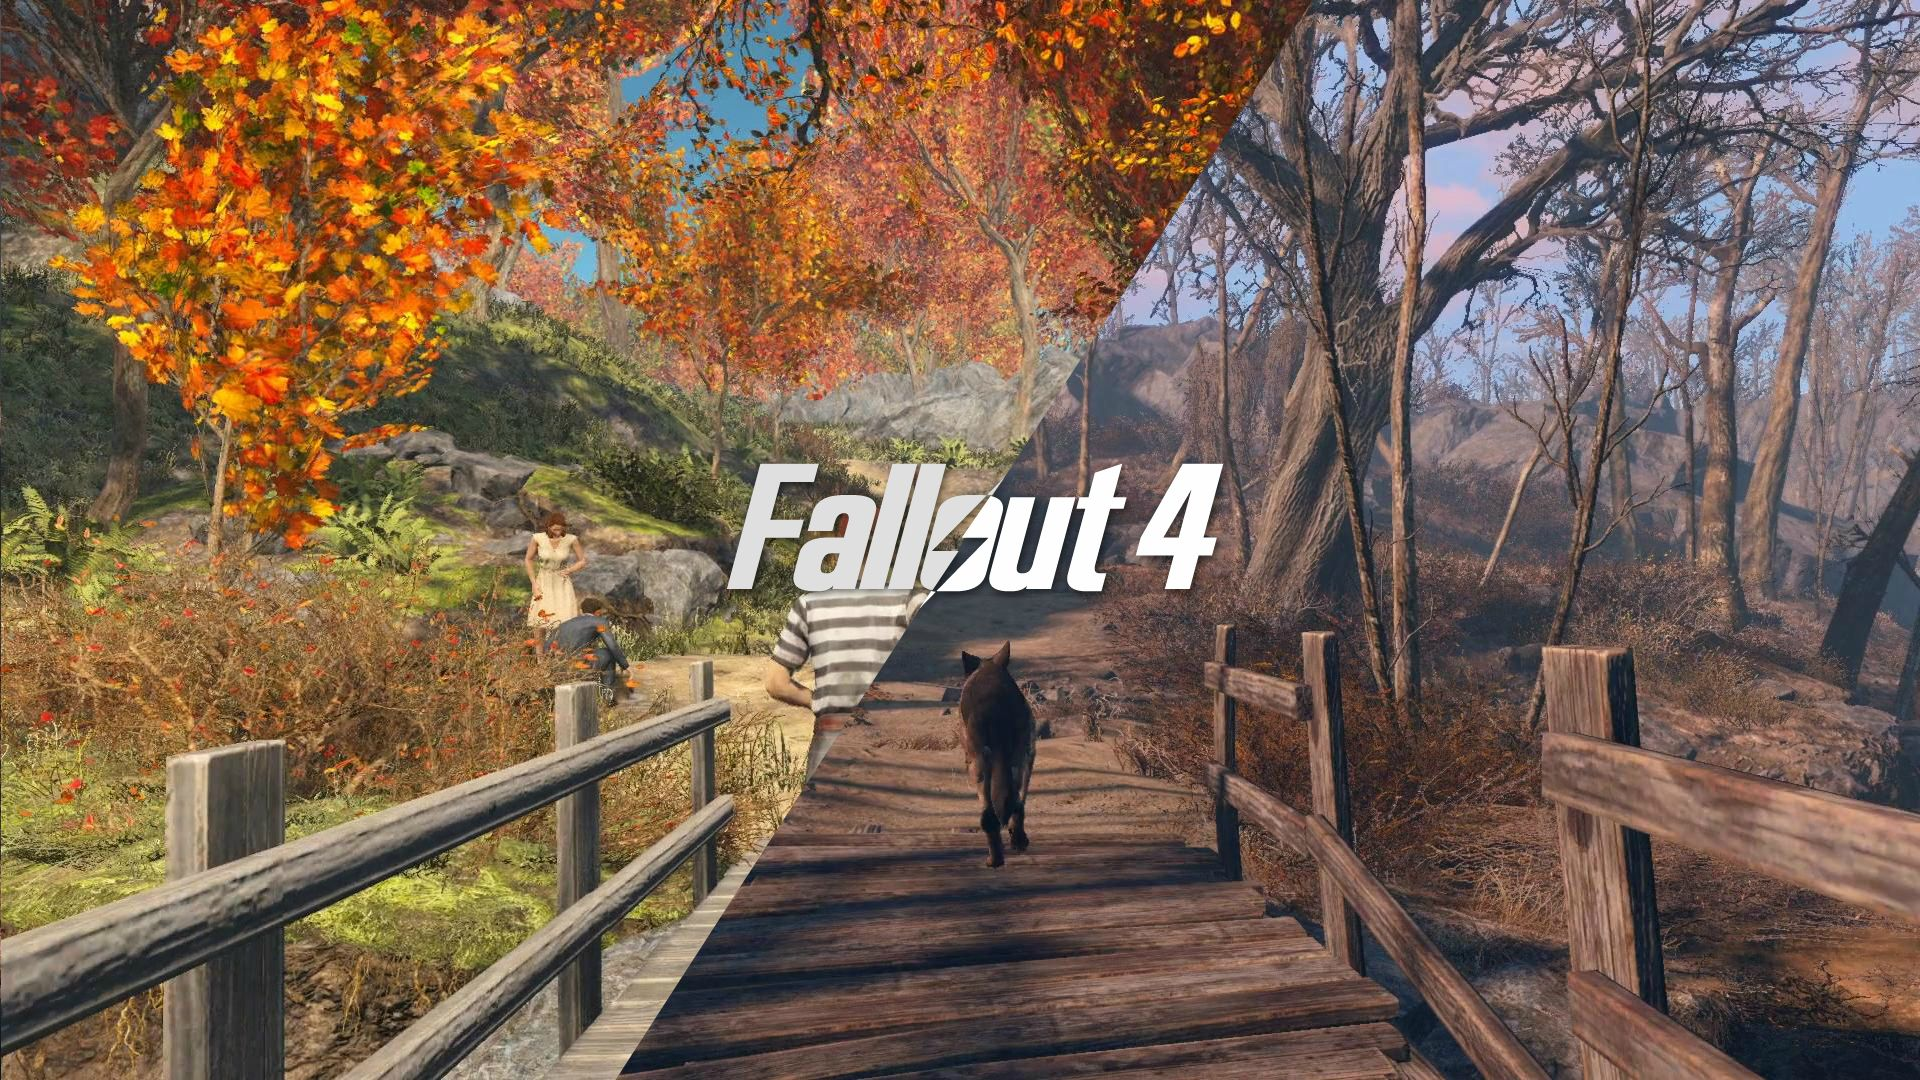 fall Out 4 HD wallpaper for download